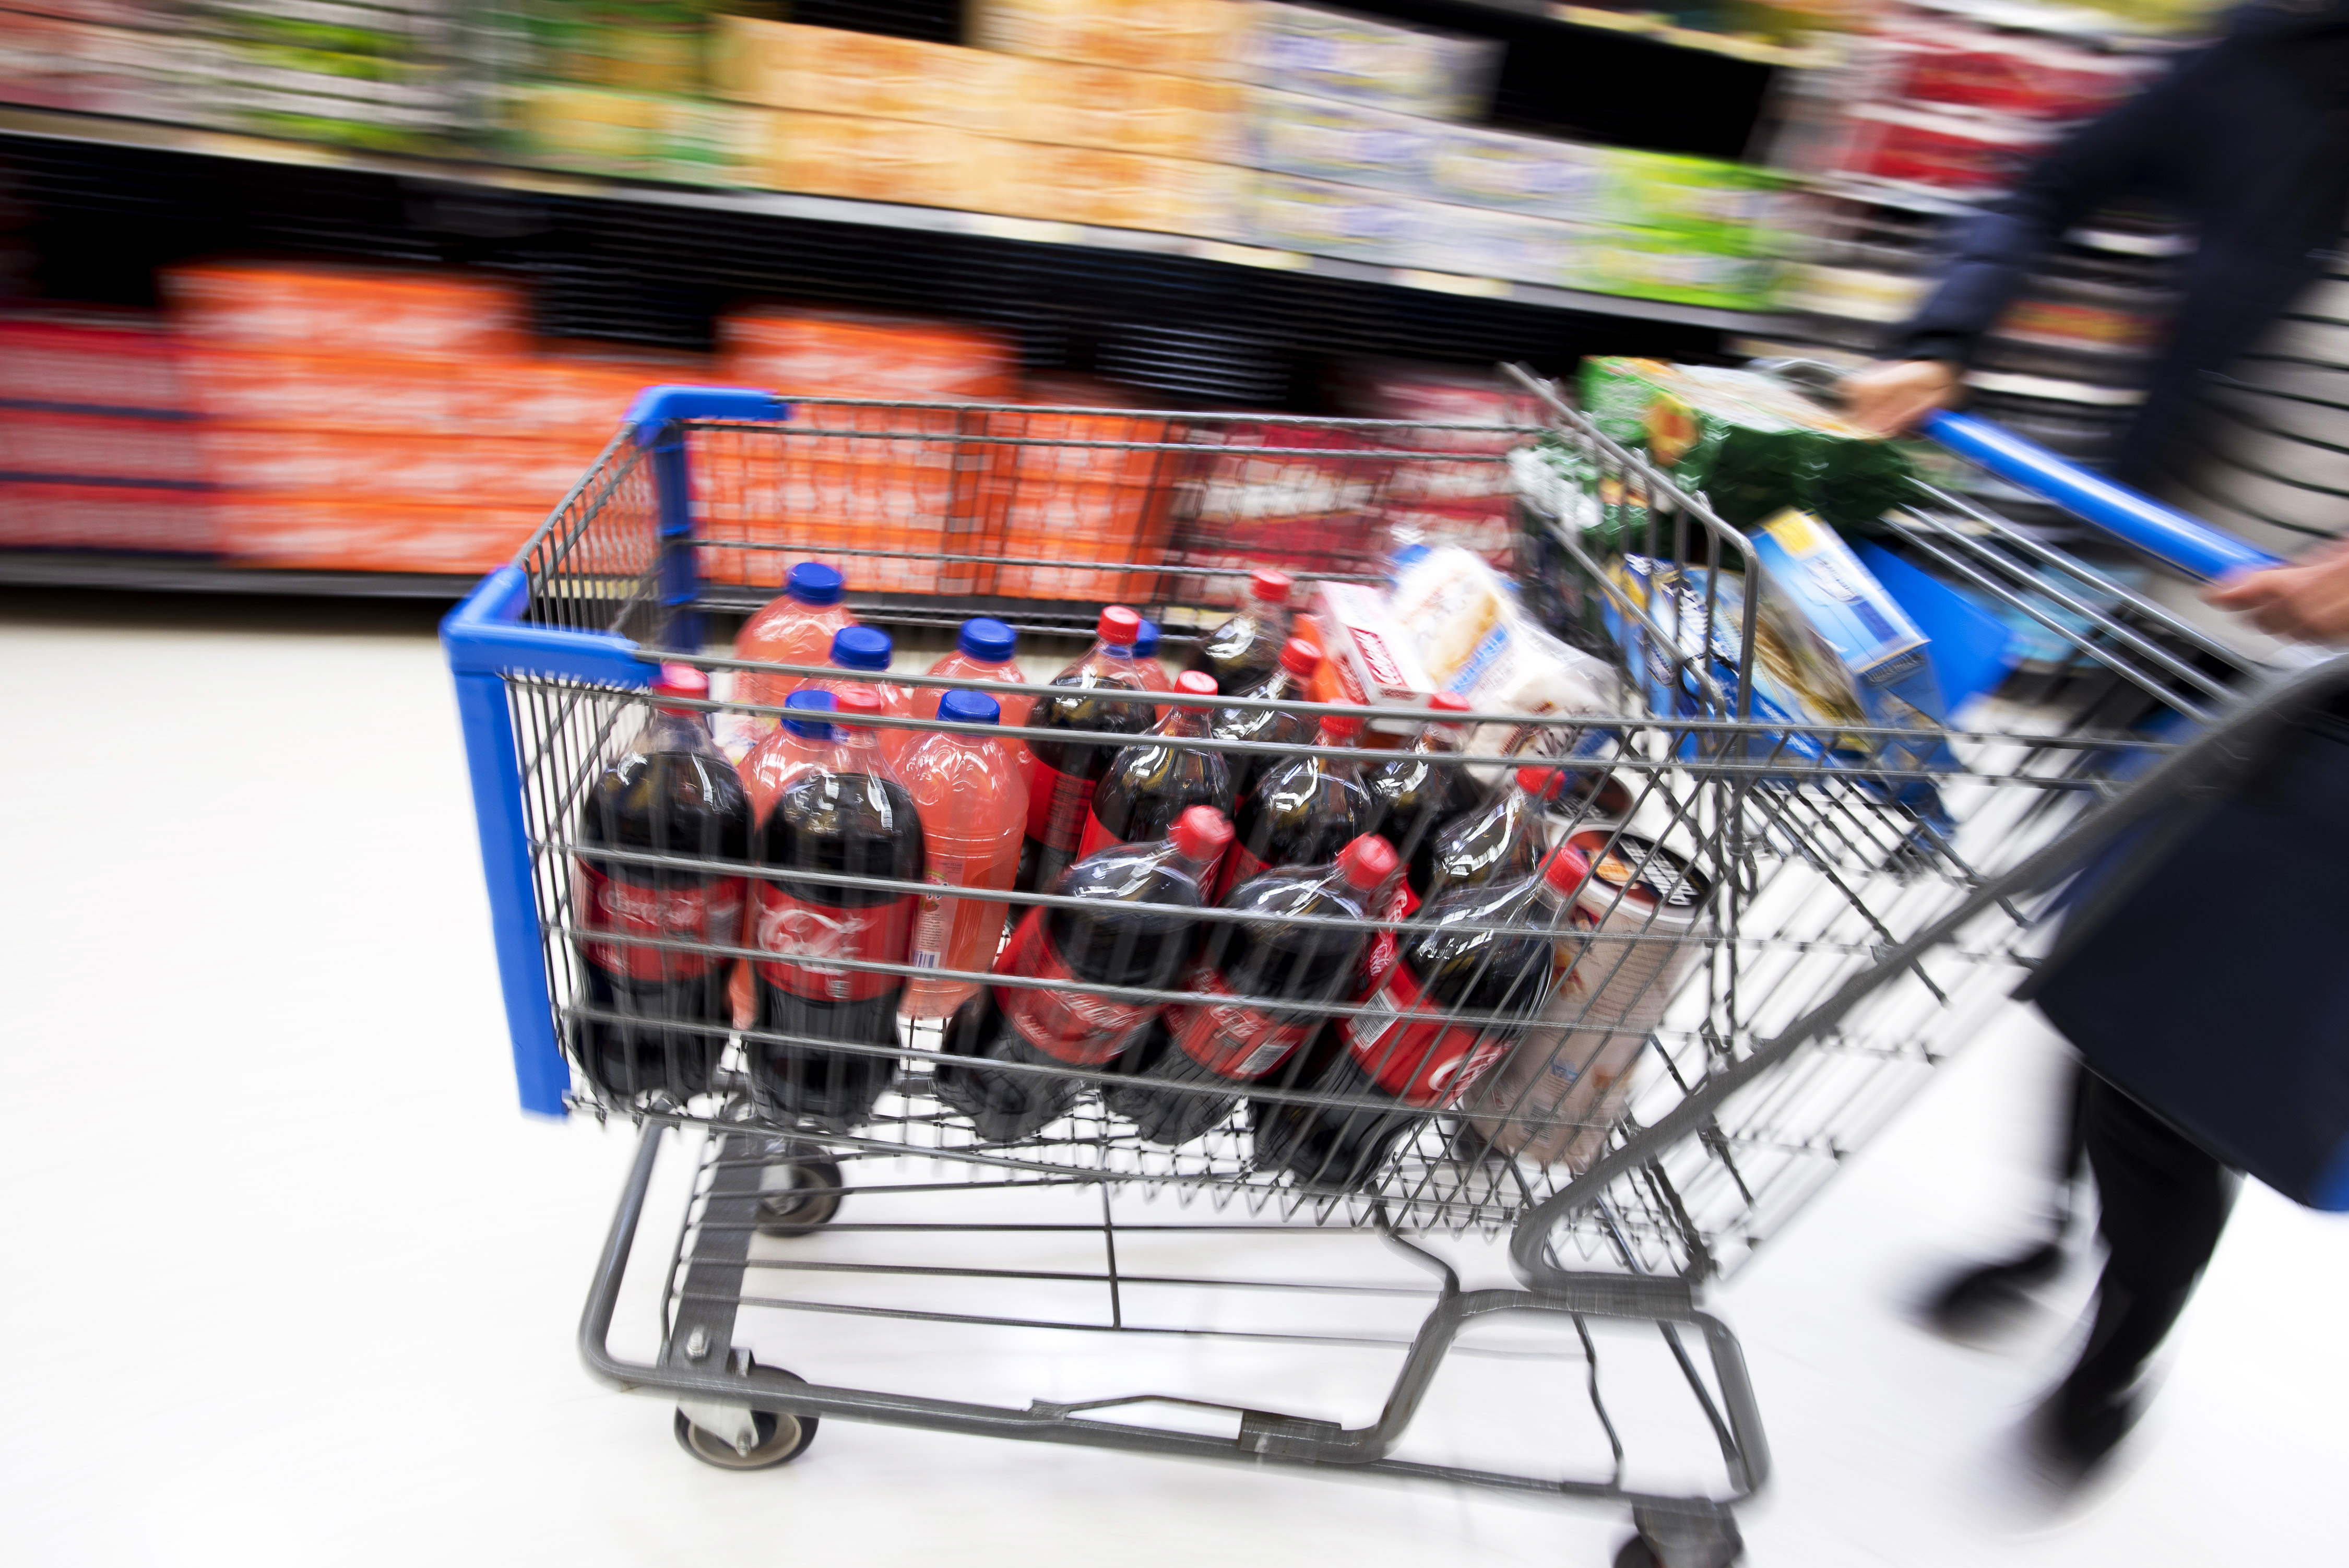 In the shopping cart of a food stamp household: Lots of soda